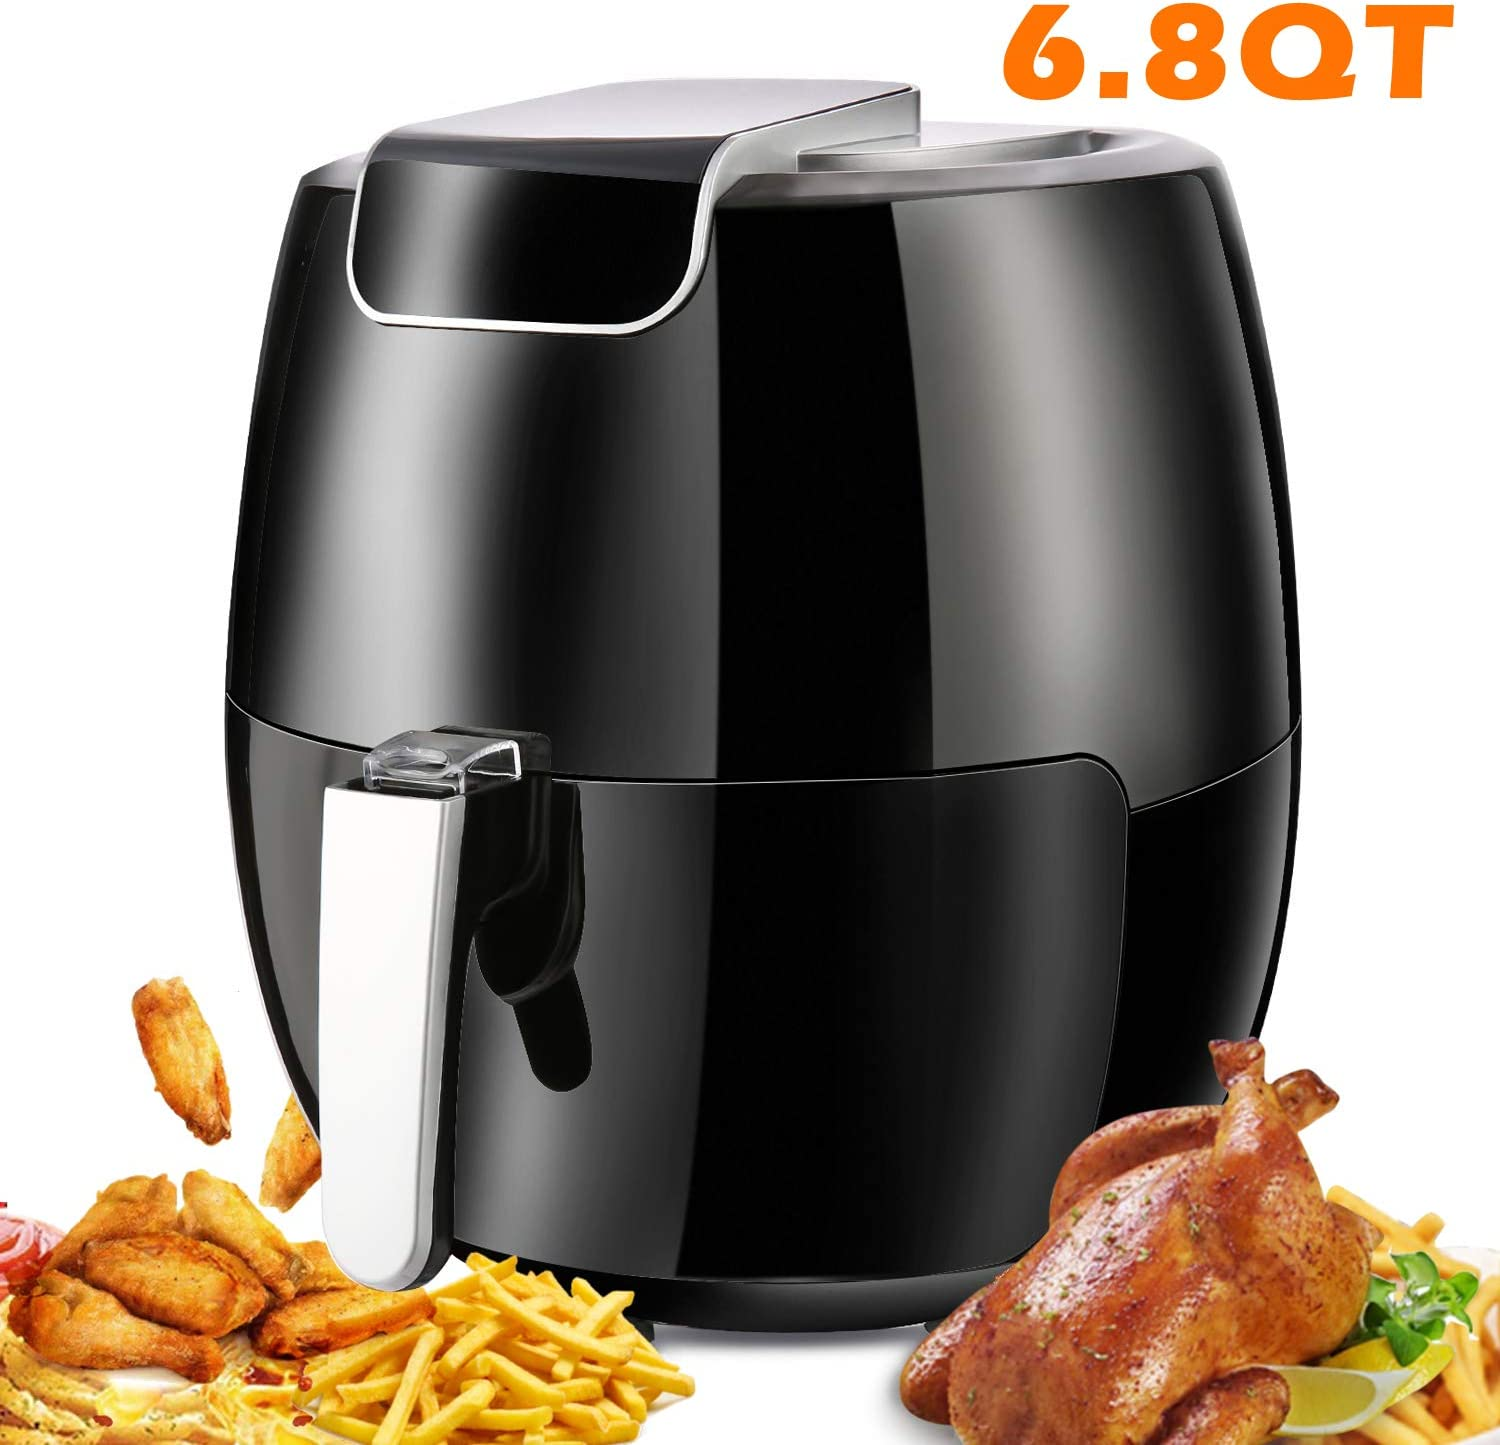 yesparn Oven999 Air Fryers Oven, 15.3 x 14.2 x 15.3 inches, black